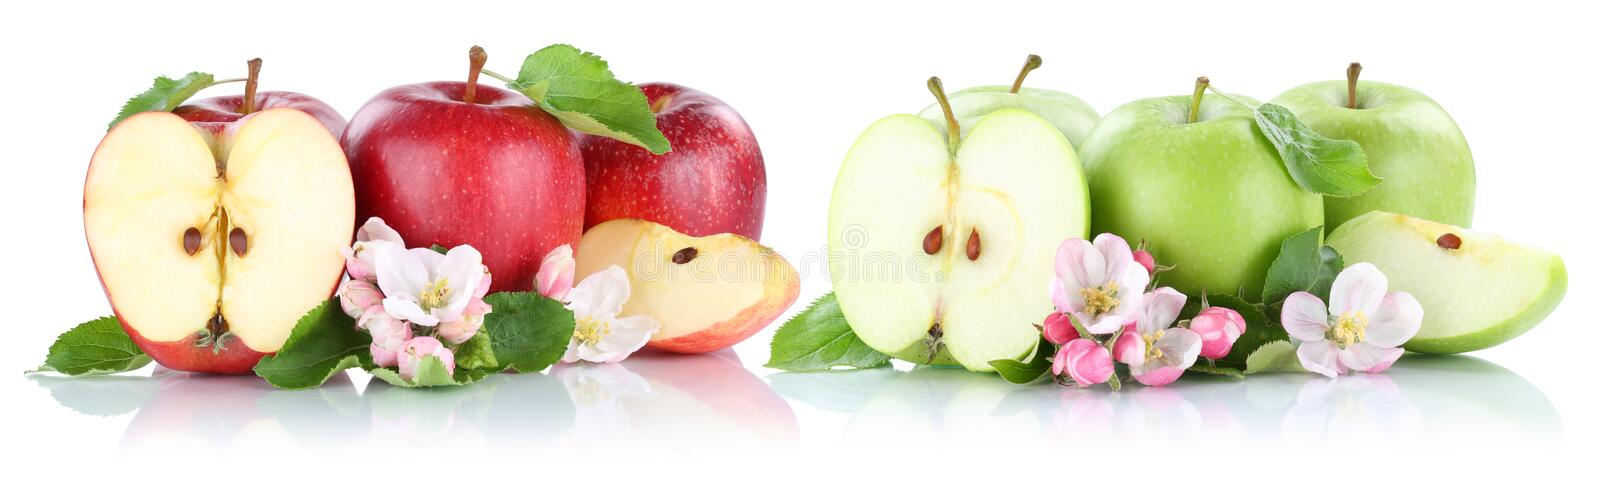 Apple fruit apples fruits red green slice half isolated on white stock photography